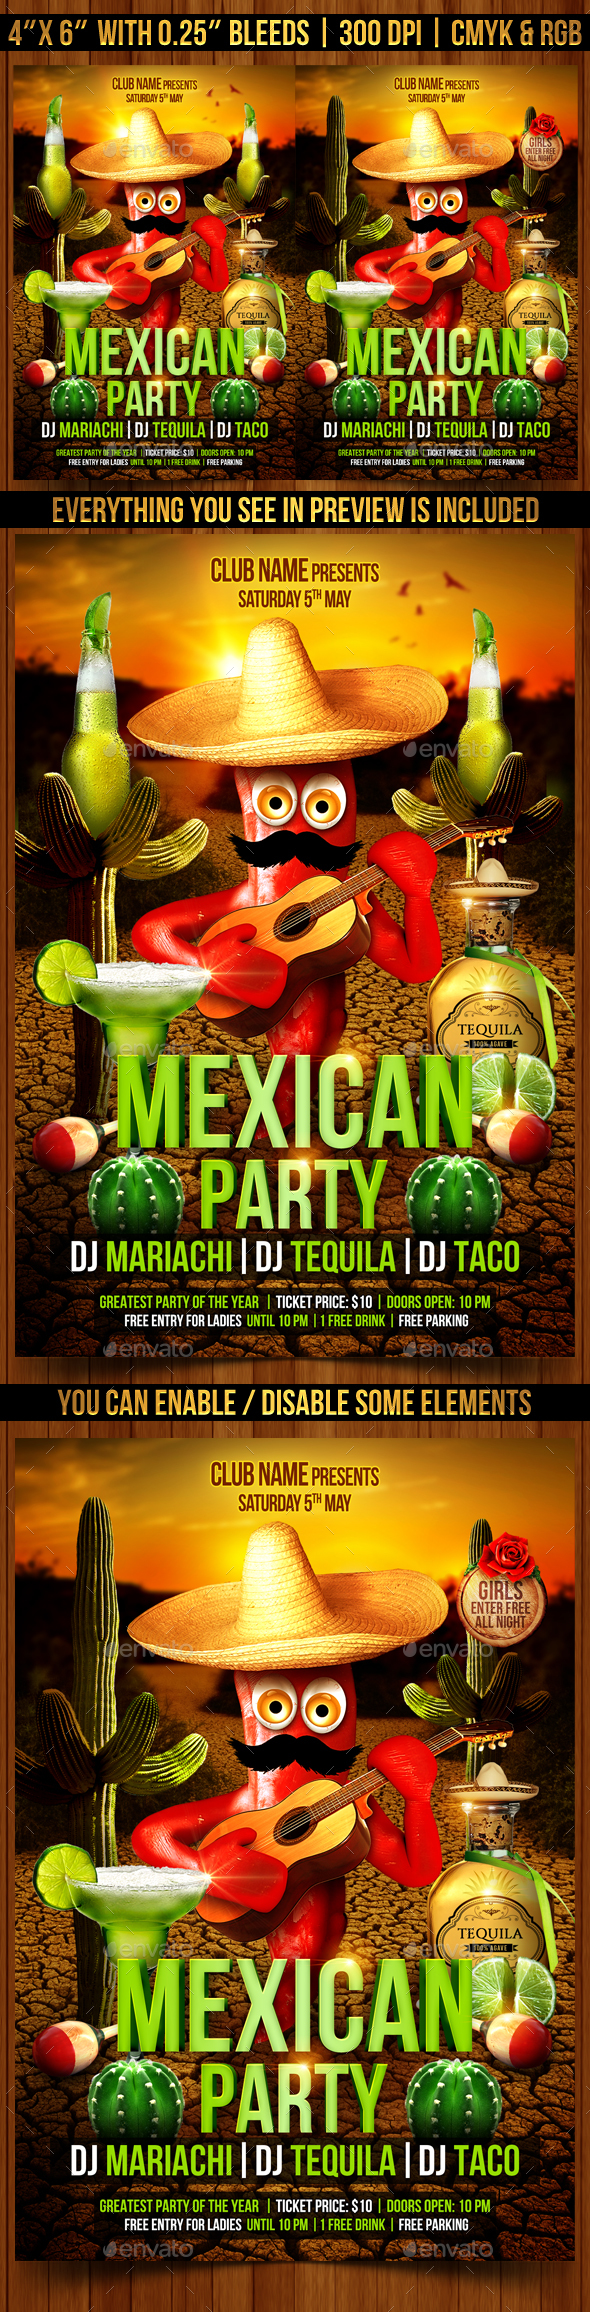 Mexican Party Flyer - Clubs & Parties Events